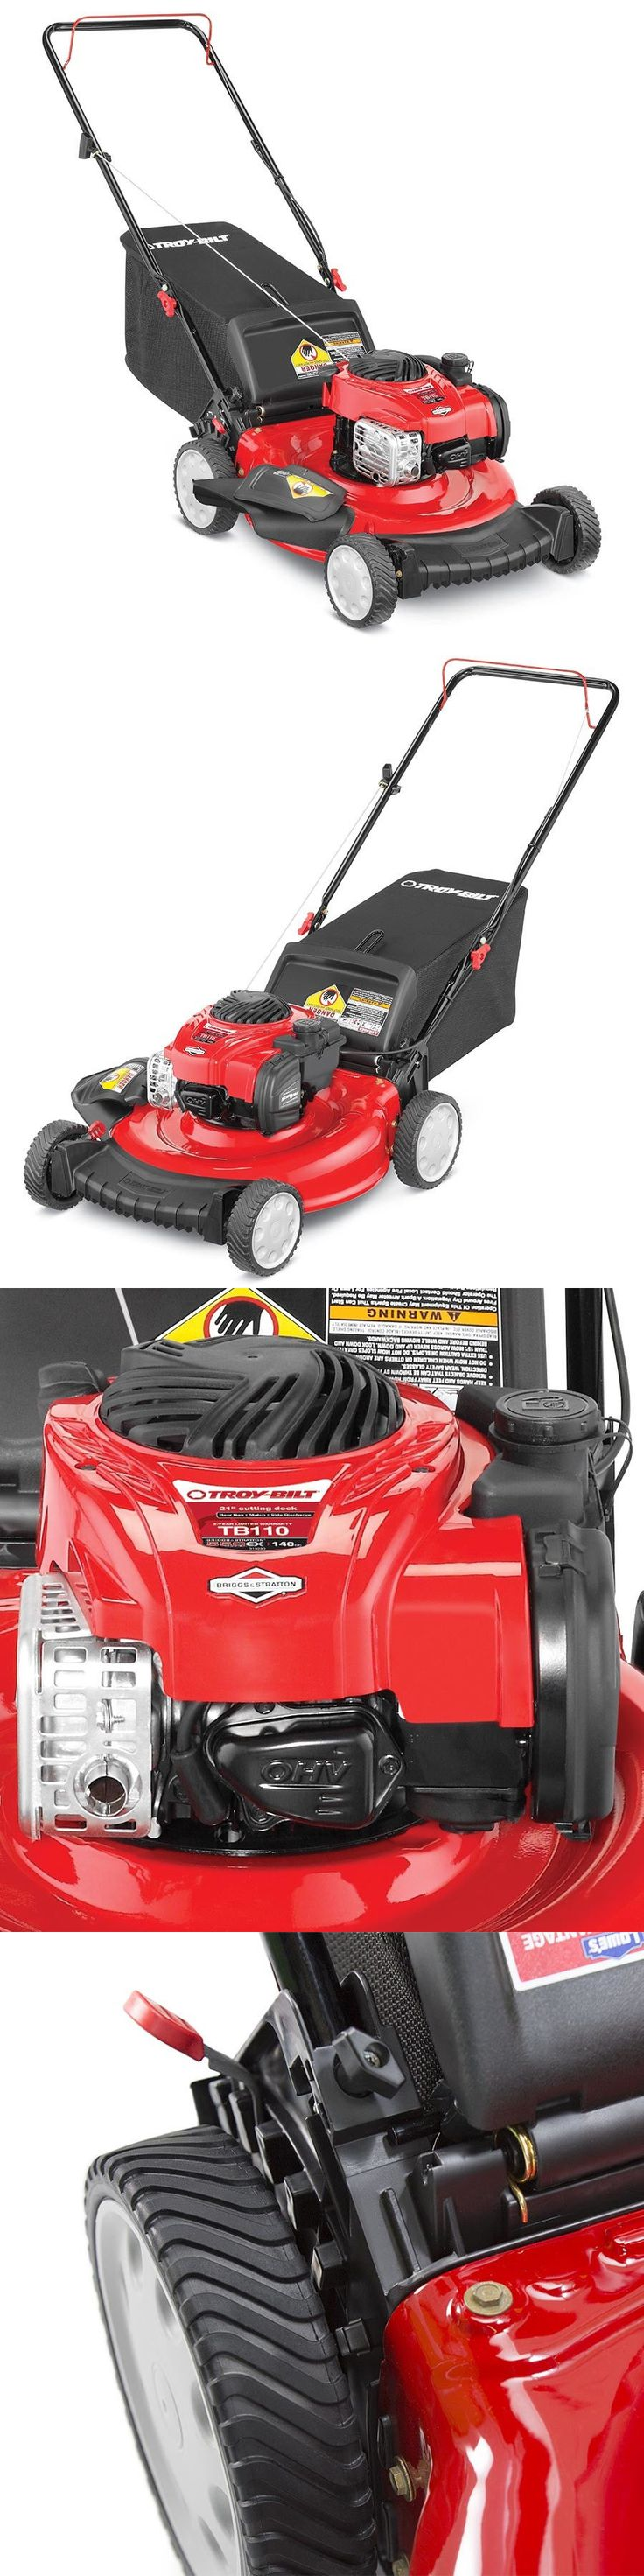 Walk-Behind Mowers 71272: Troy-Bilt Tb110 Push Gas Lawn Mower - 21 In-Push With Mulching Capablity - Grass -> BUY IT NOW ONLY: $208.99 on eBay!